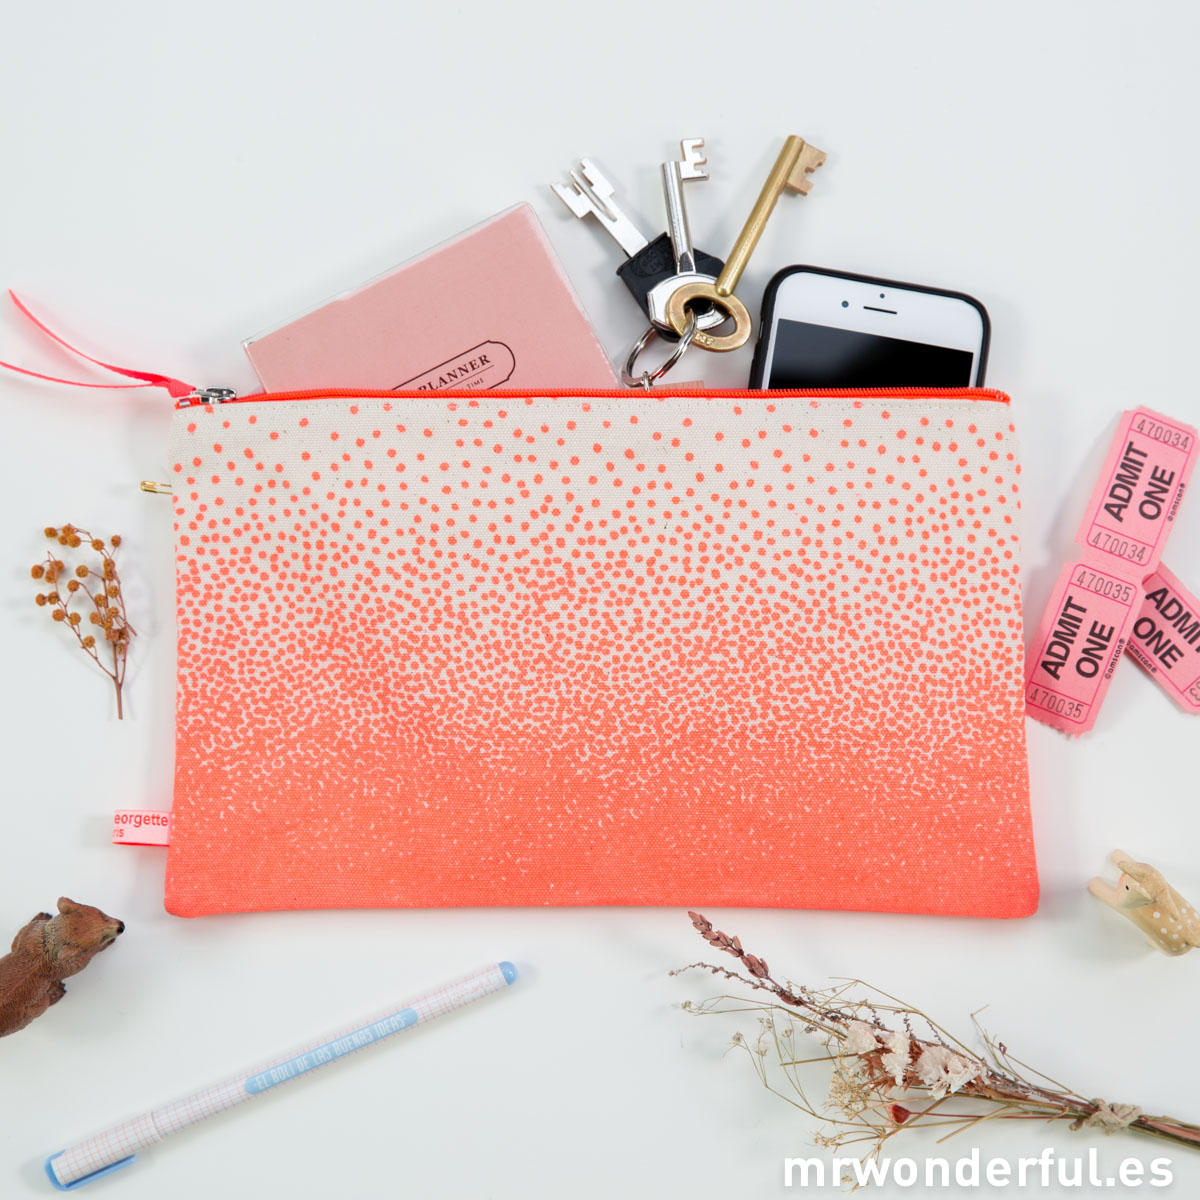 mrwonderful_TROUSSE_POUDRE_ORANGE_Neceser-de-lona-pintado-a-topitos-Color-neon-8